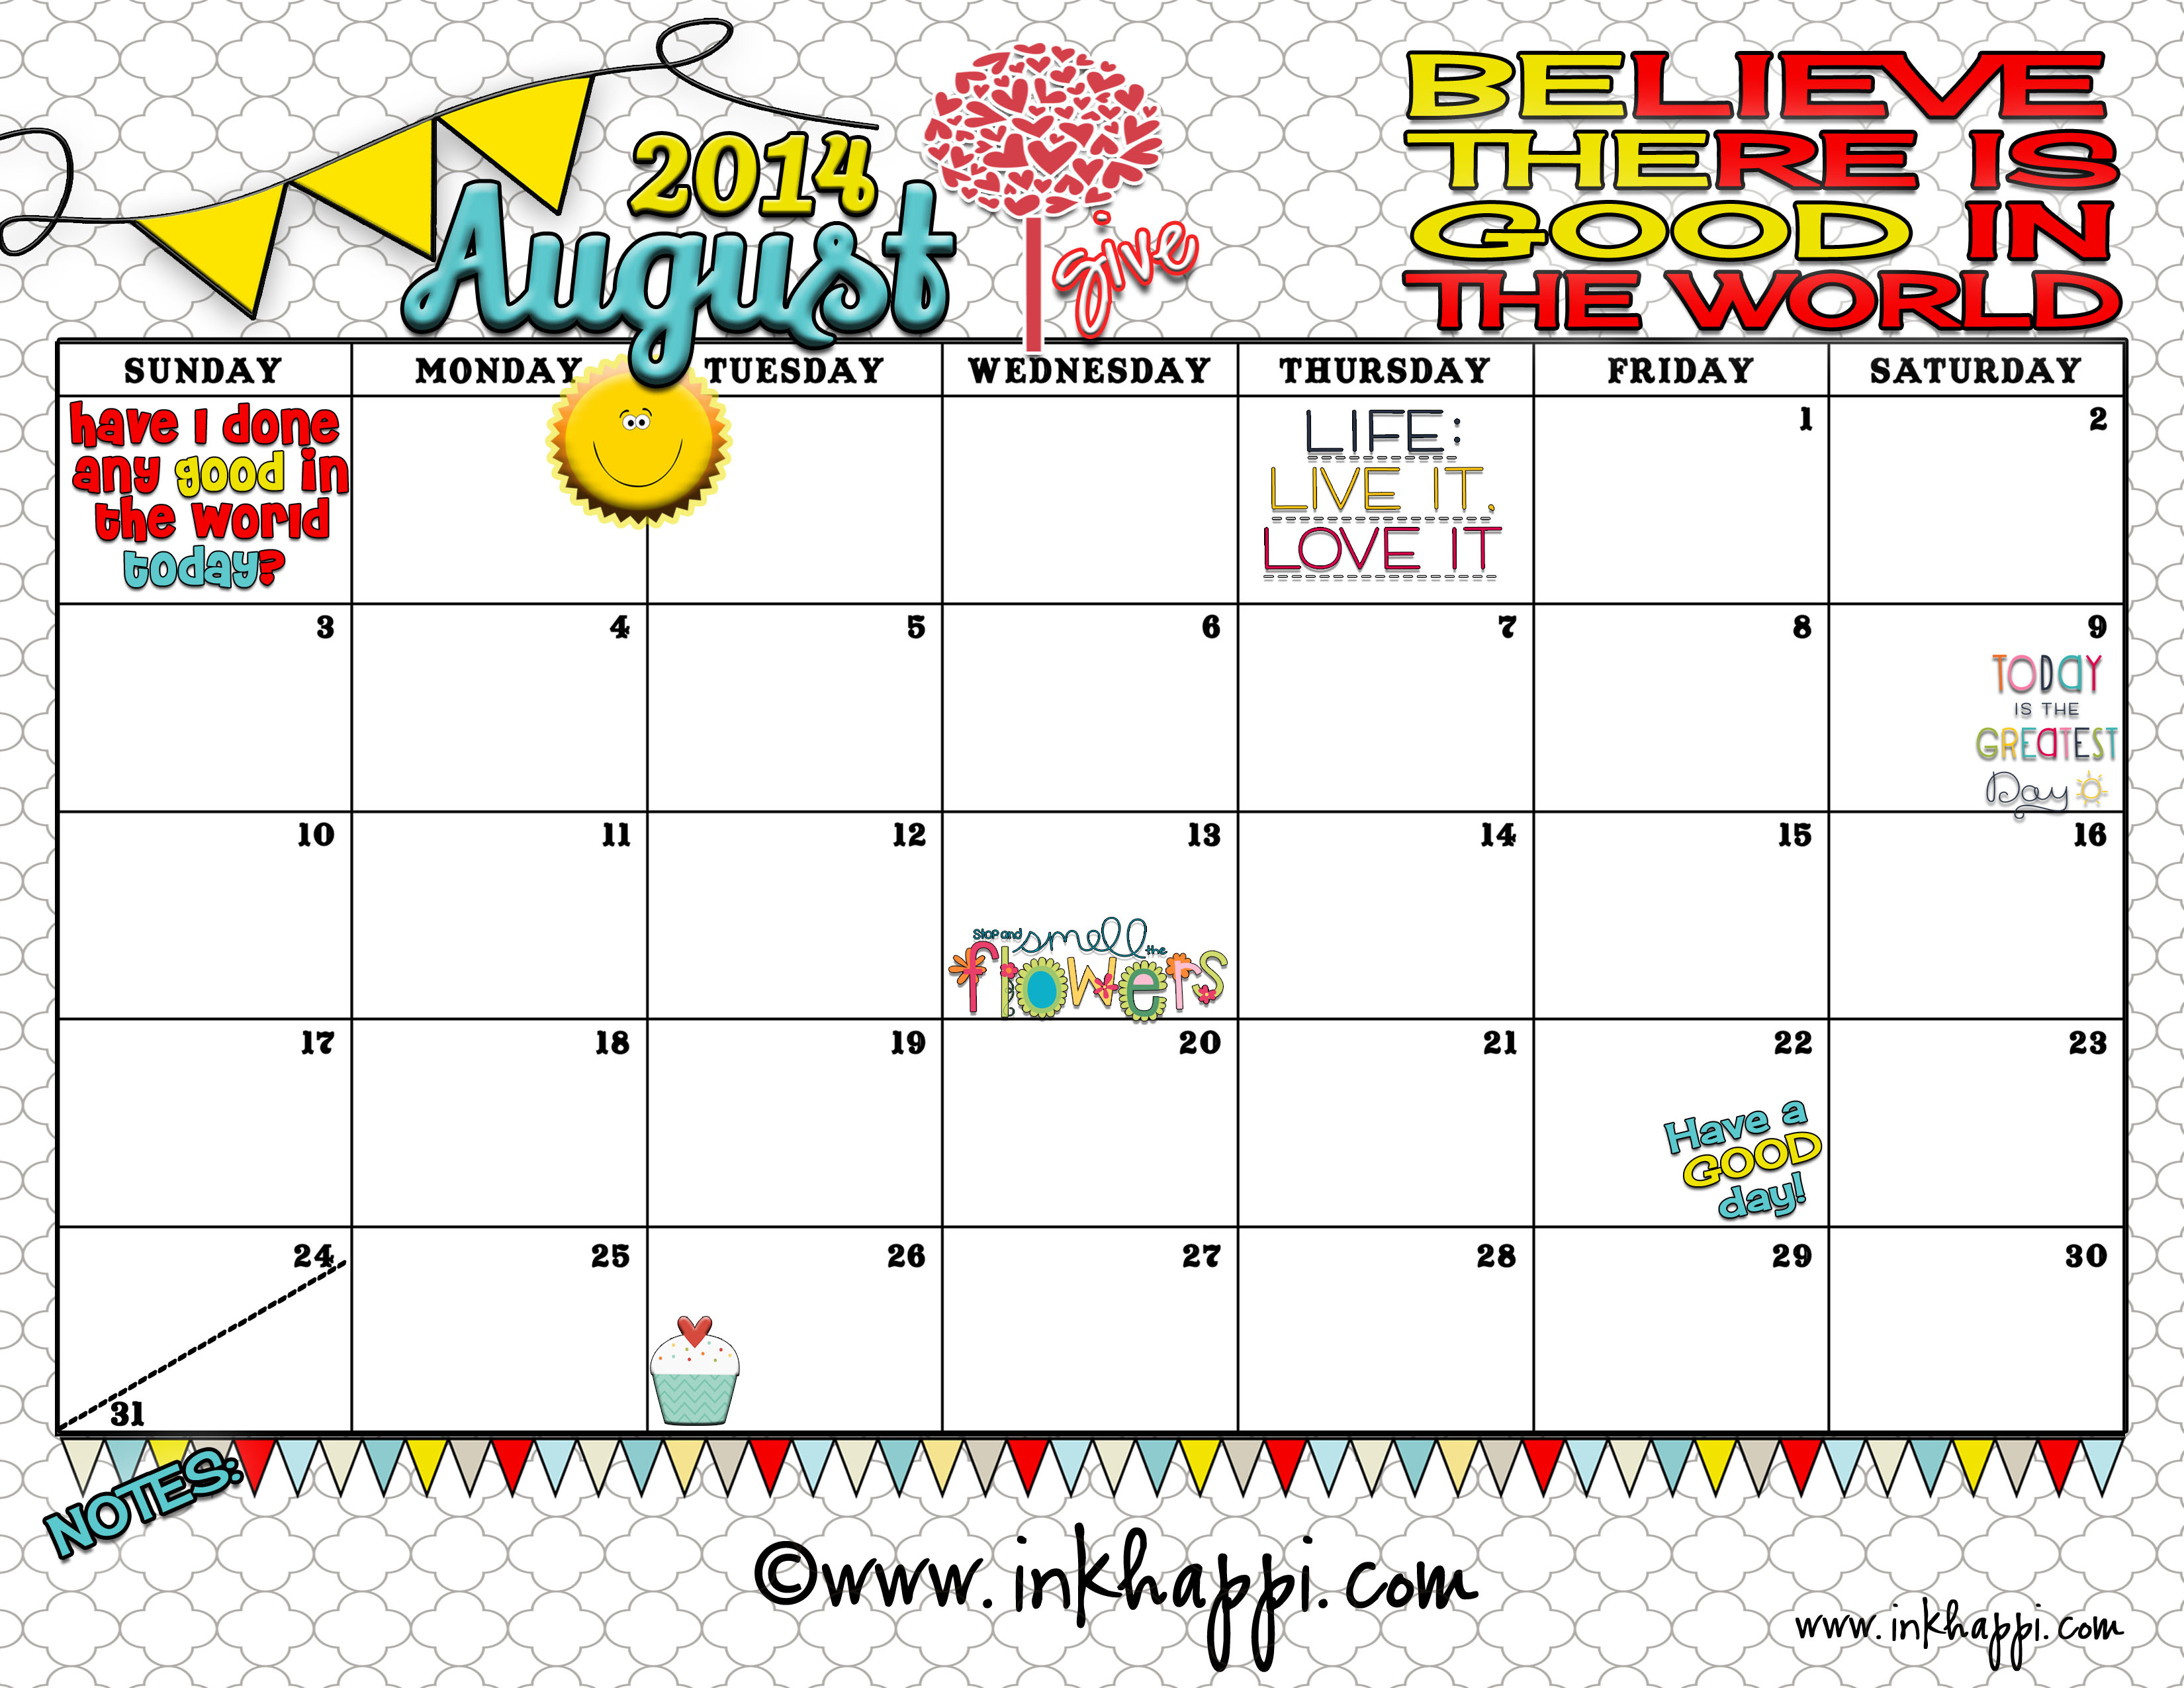 Calendar August : August calendar is here with a good message inkhappi